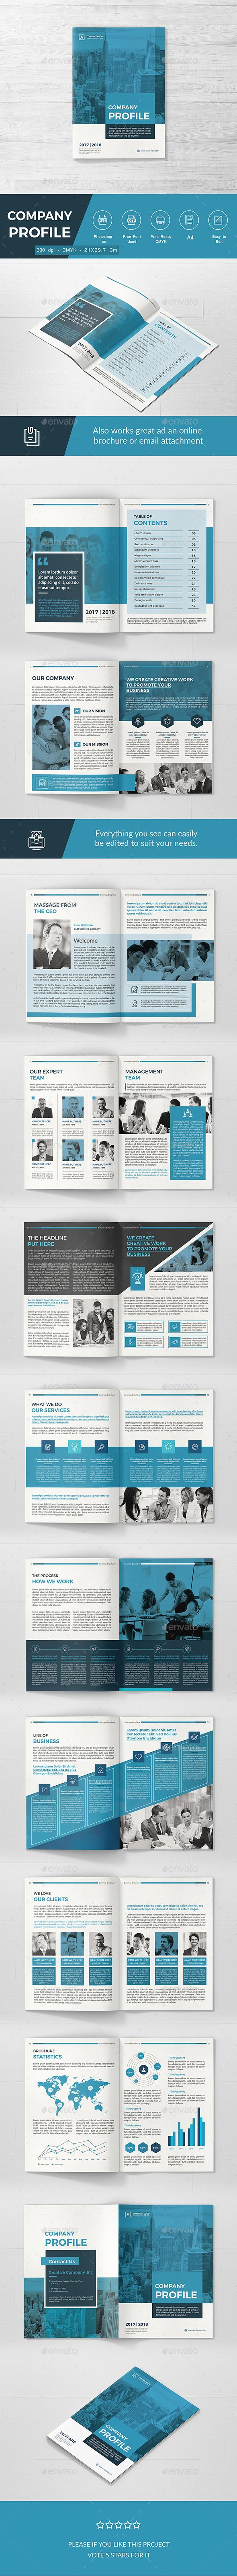 Company Profile — Photoshop PSD #book #red • Download ➝ https ...